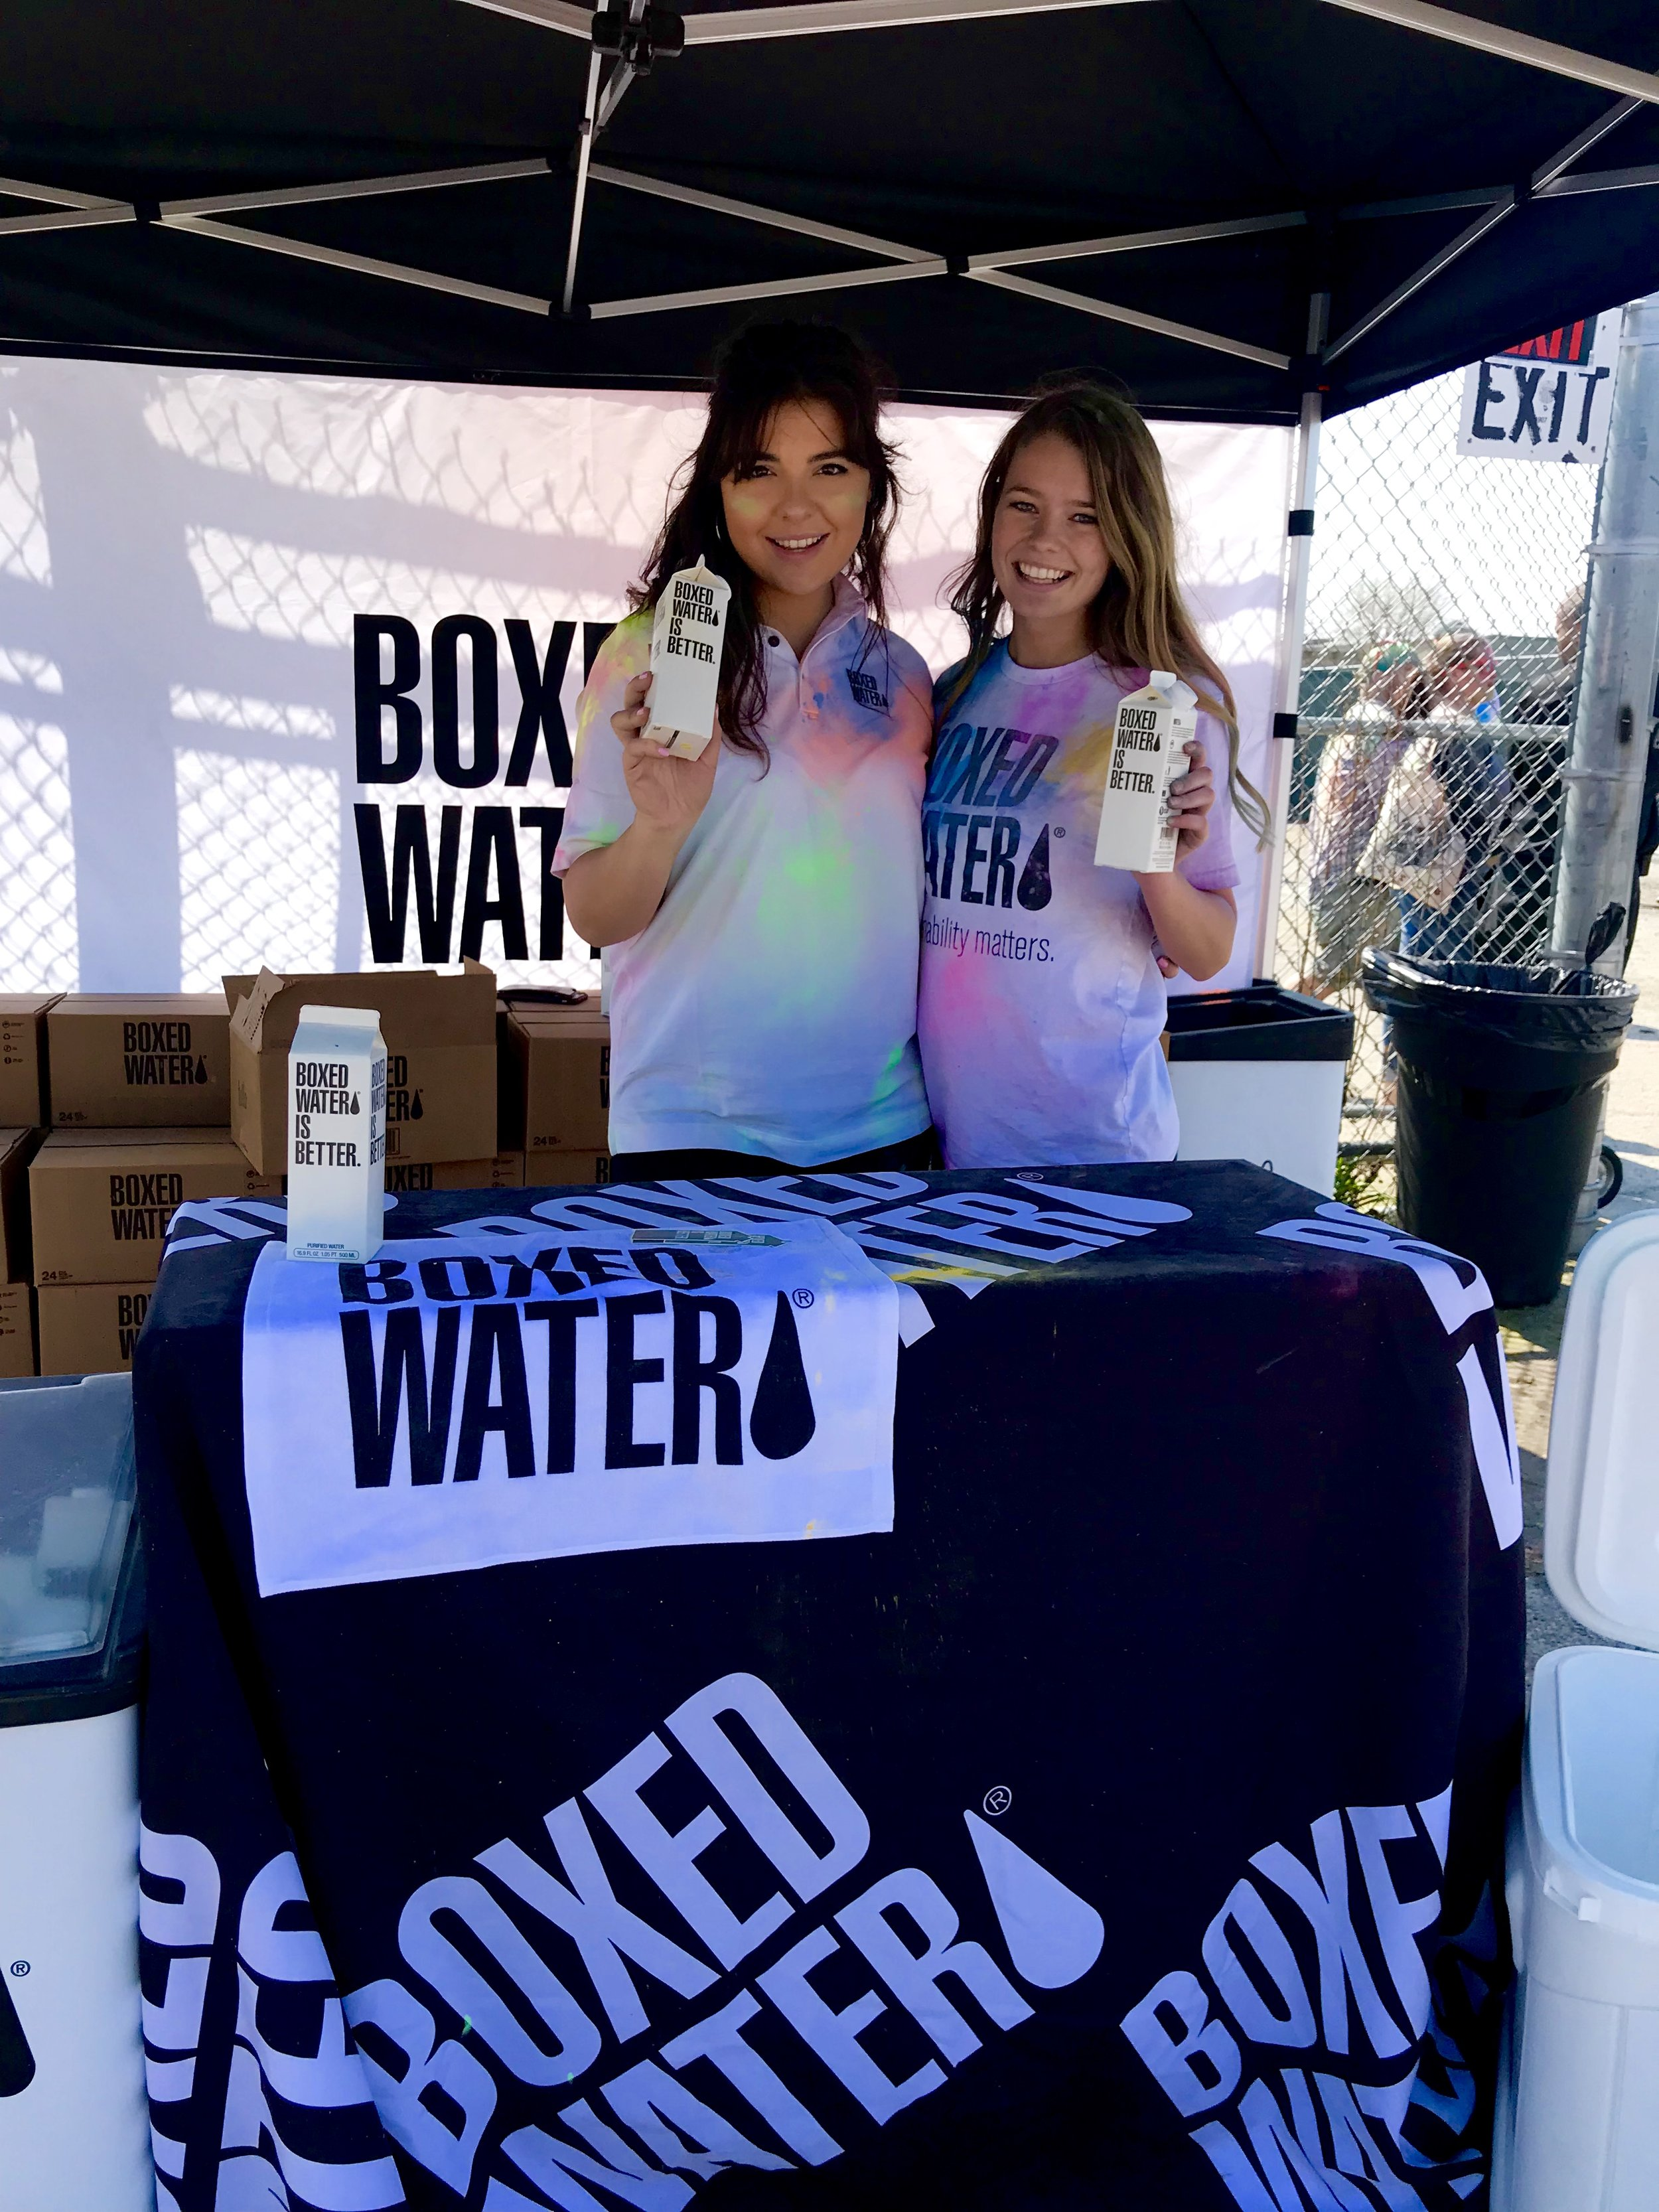 Boxed Water was also spotted at the Holi Festival, because definitely, Boxed Water is Better!